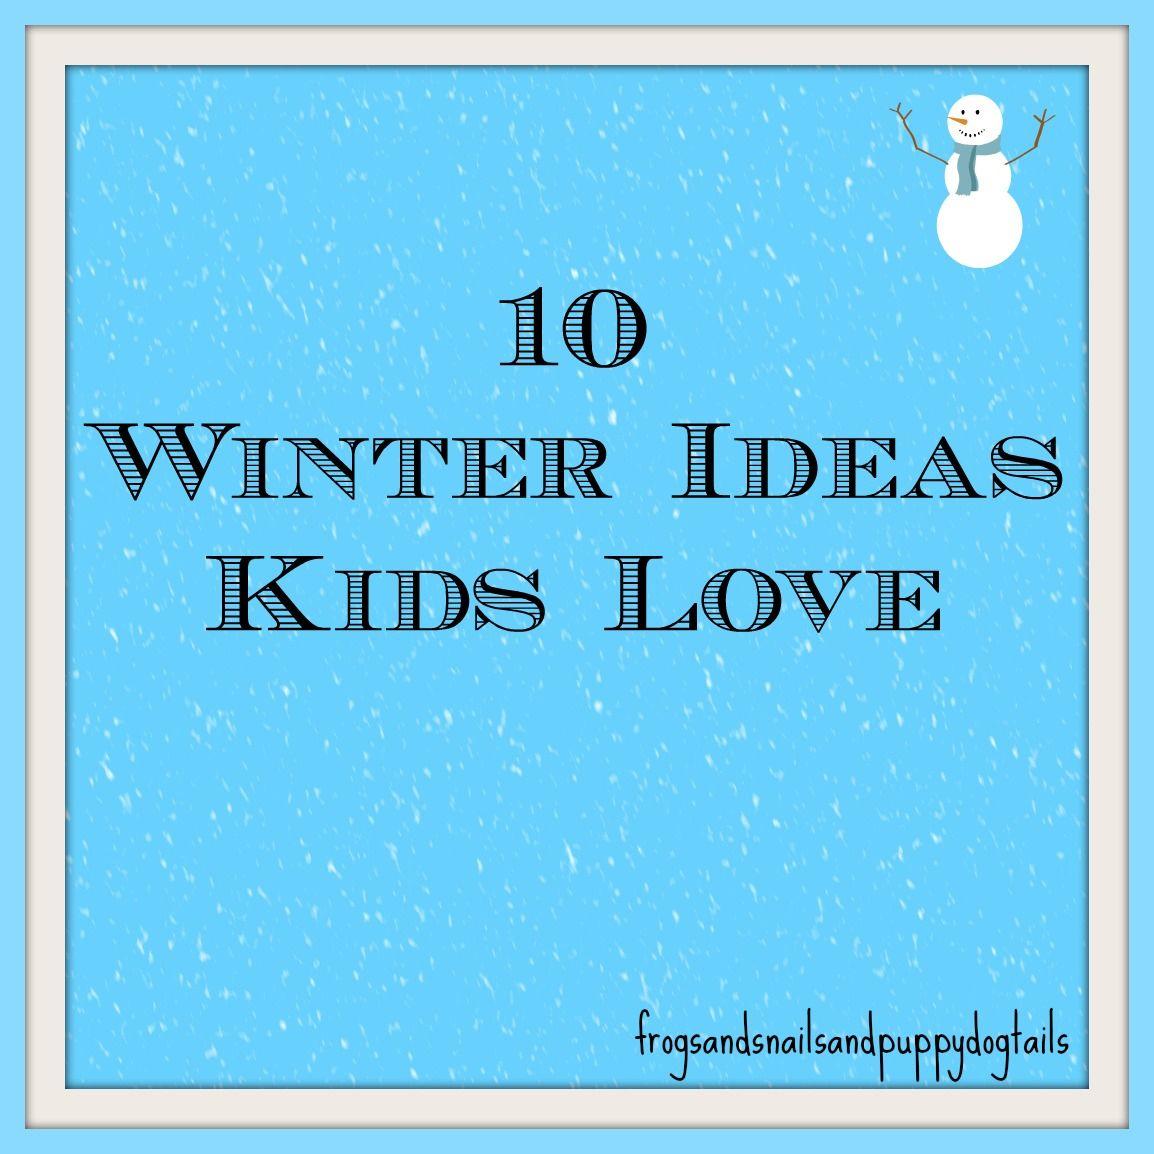 Frogs & Snails & Puppy Dog Tails (FSPDT): 10 Winter Ideas Kids Love